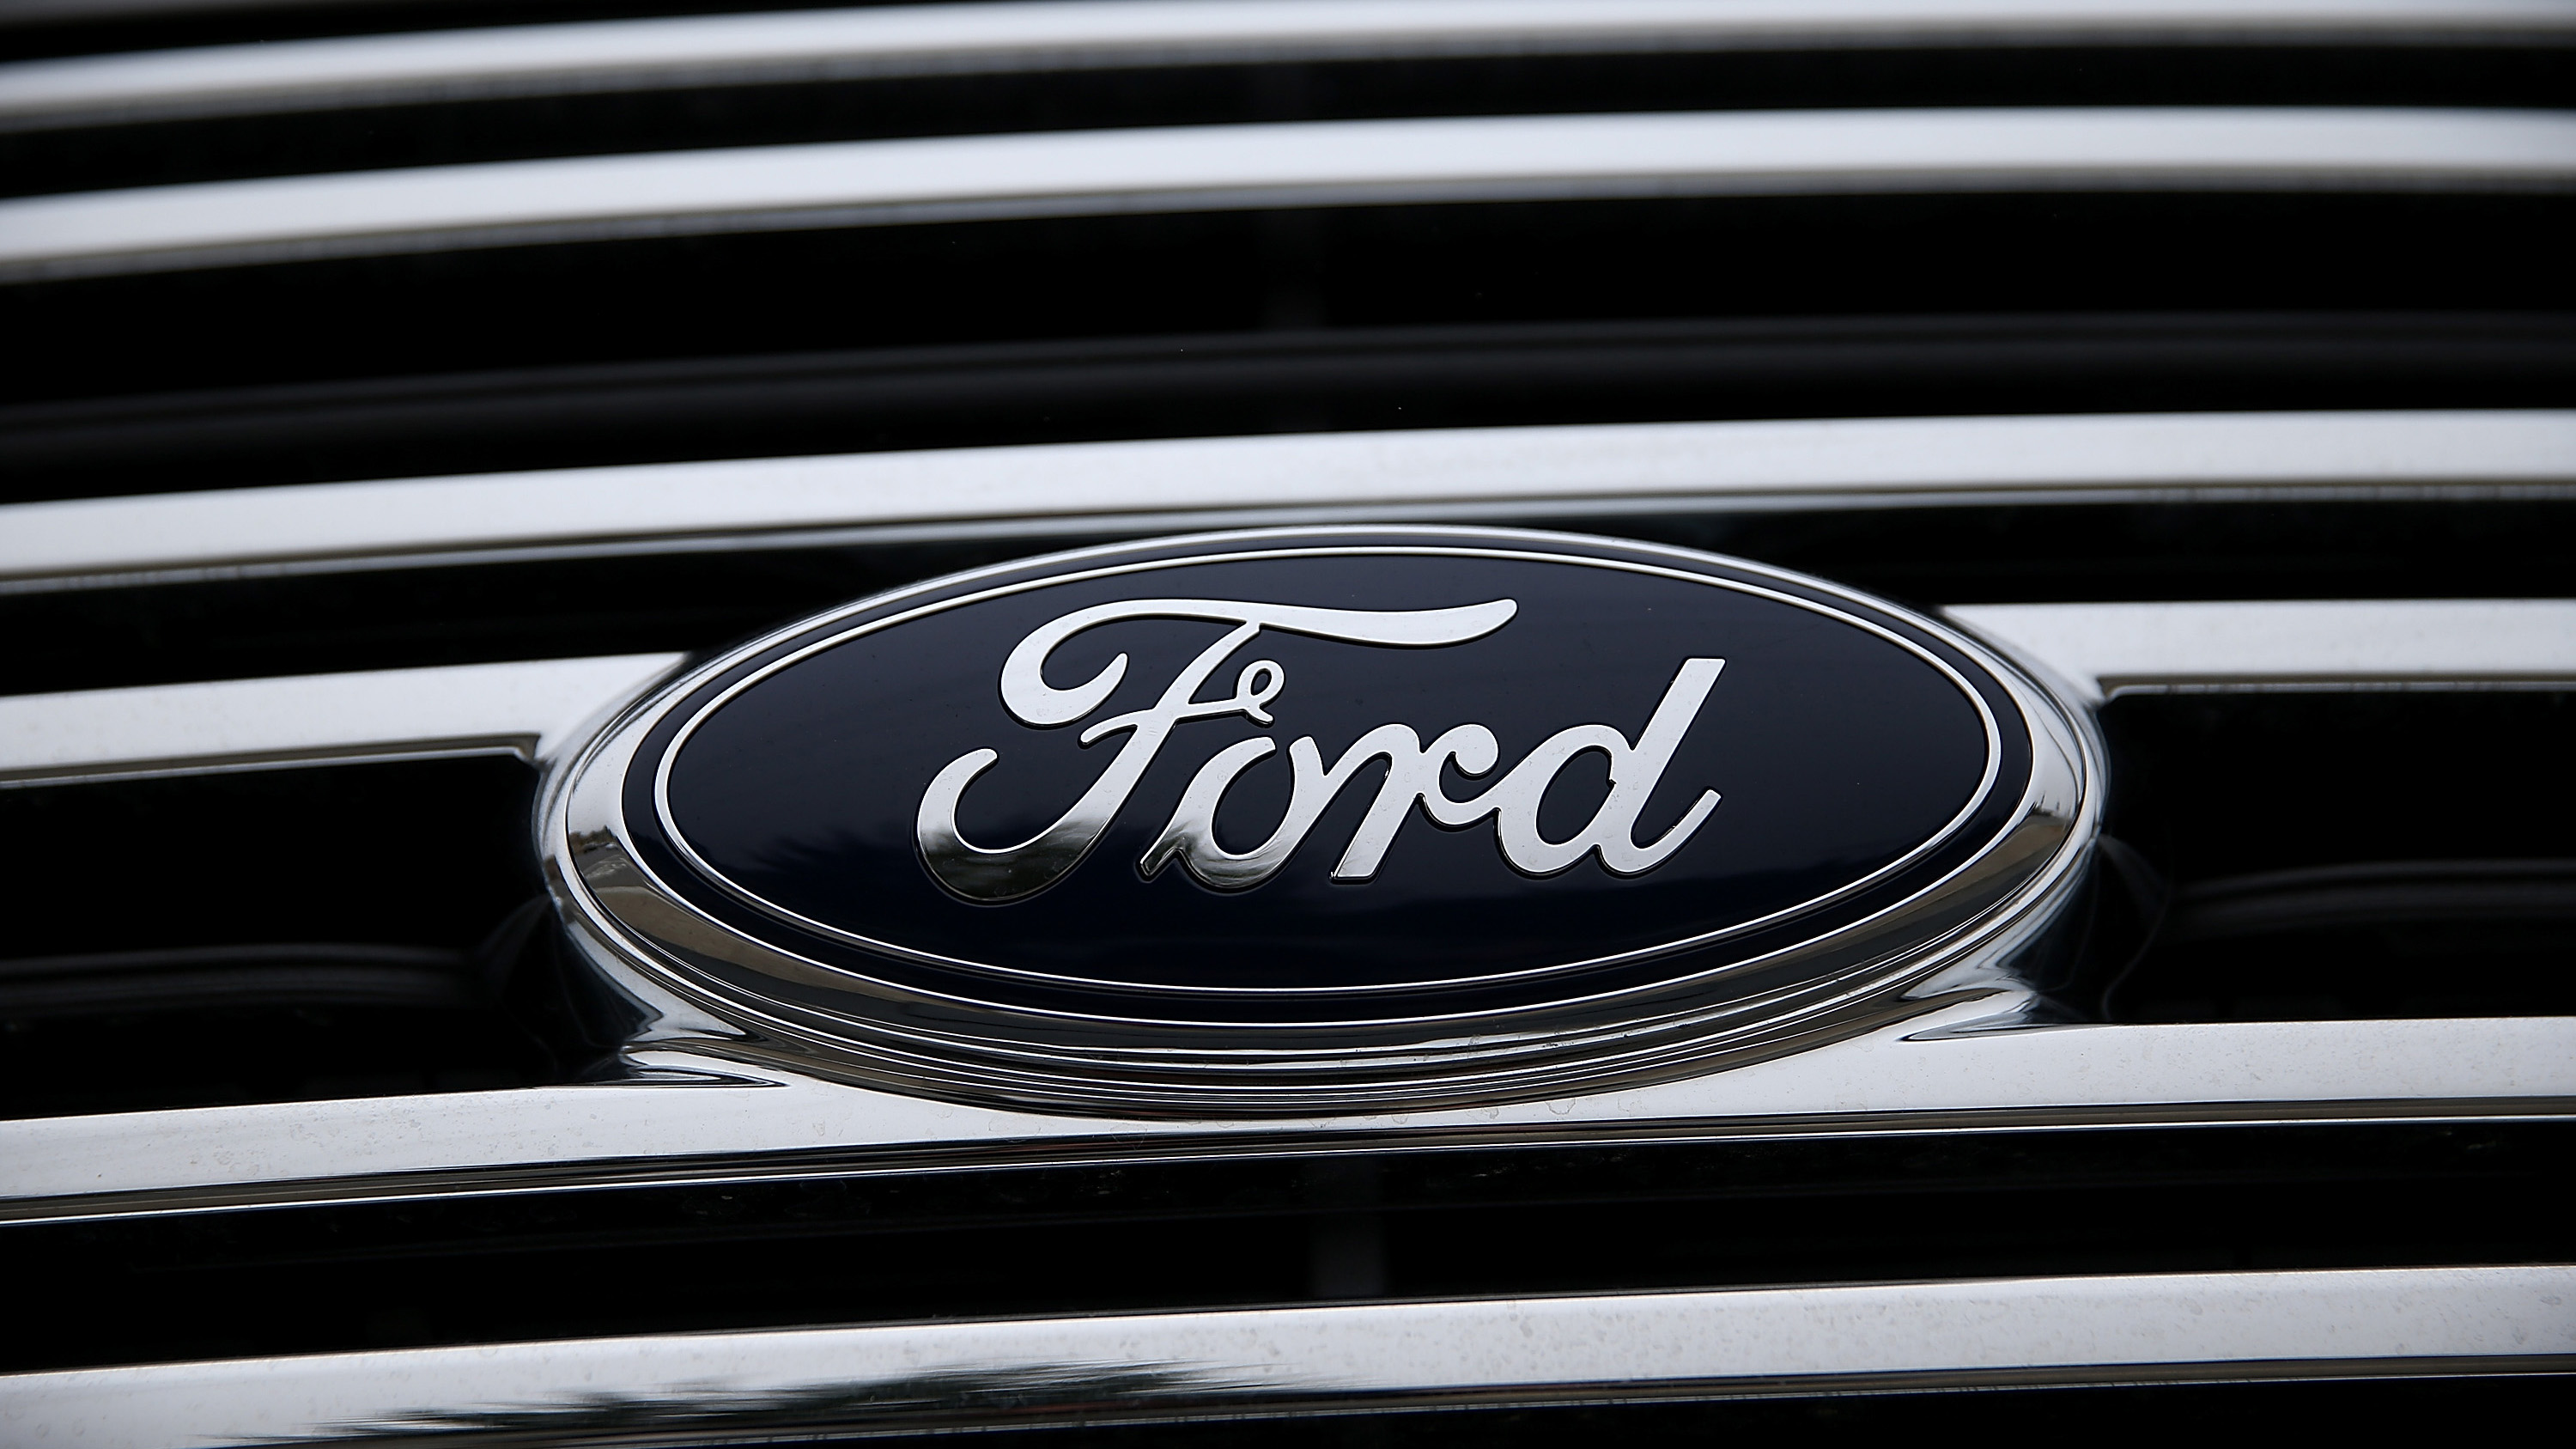 Trump Wins In Automaker As Ford Aborts Mexico Plant